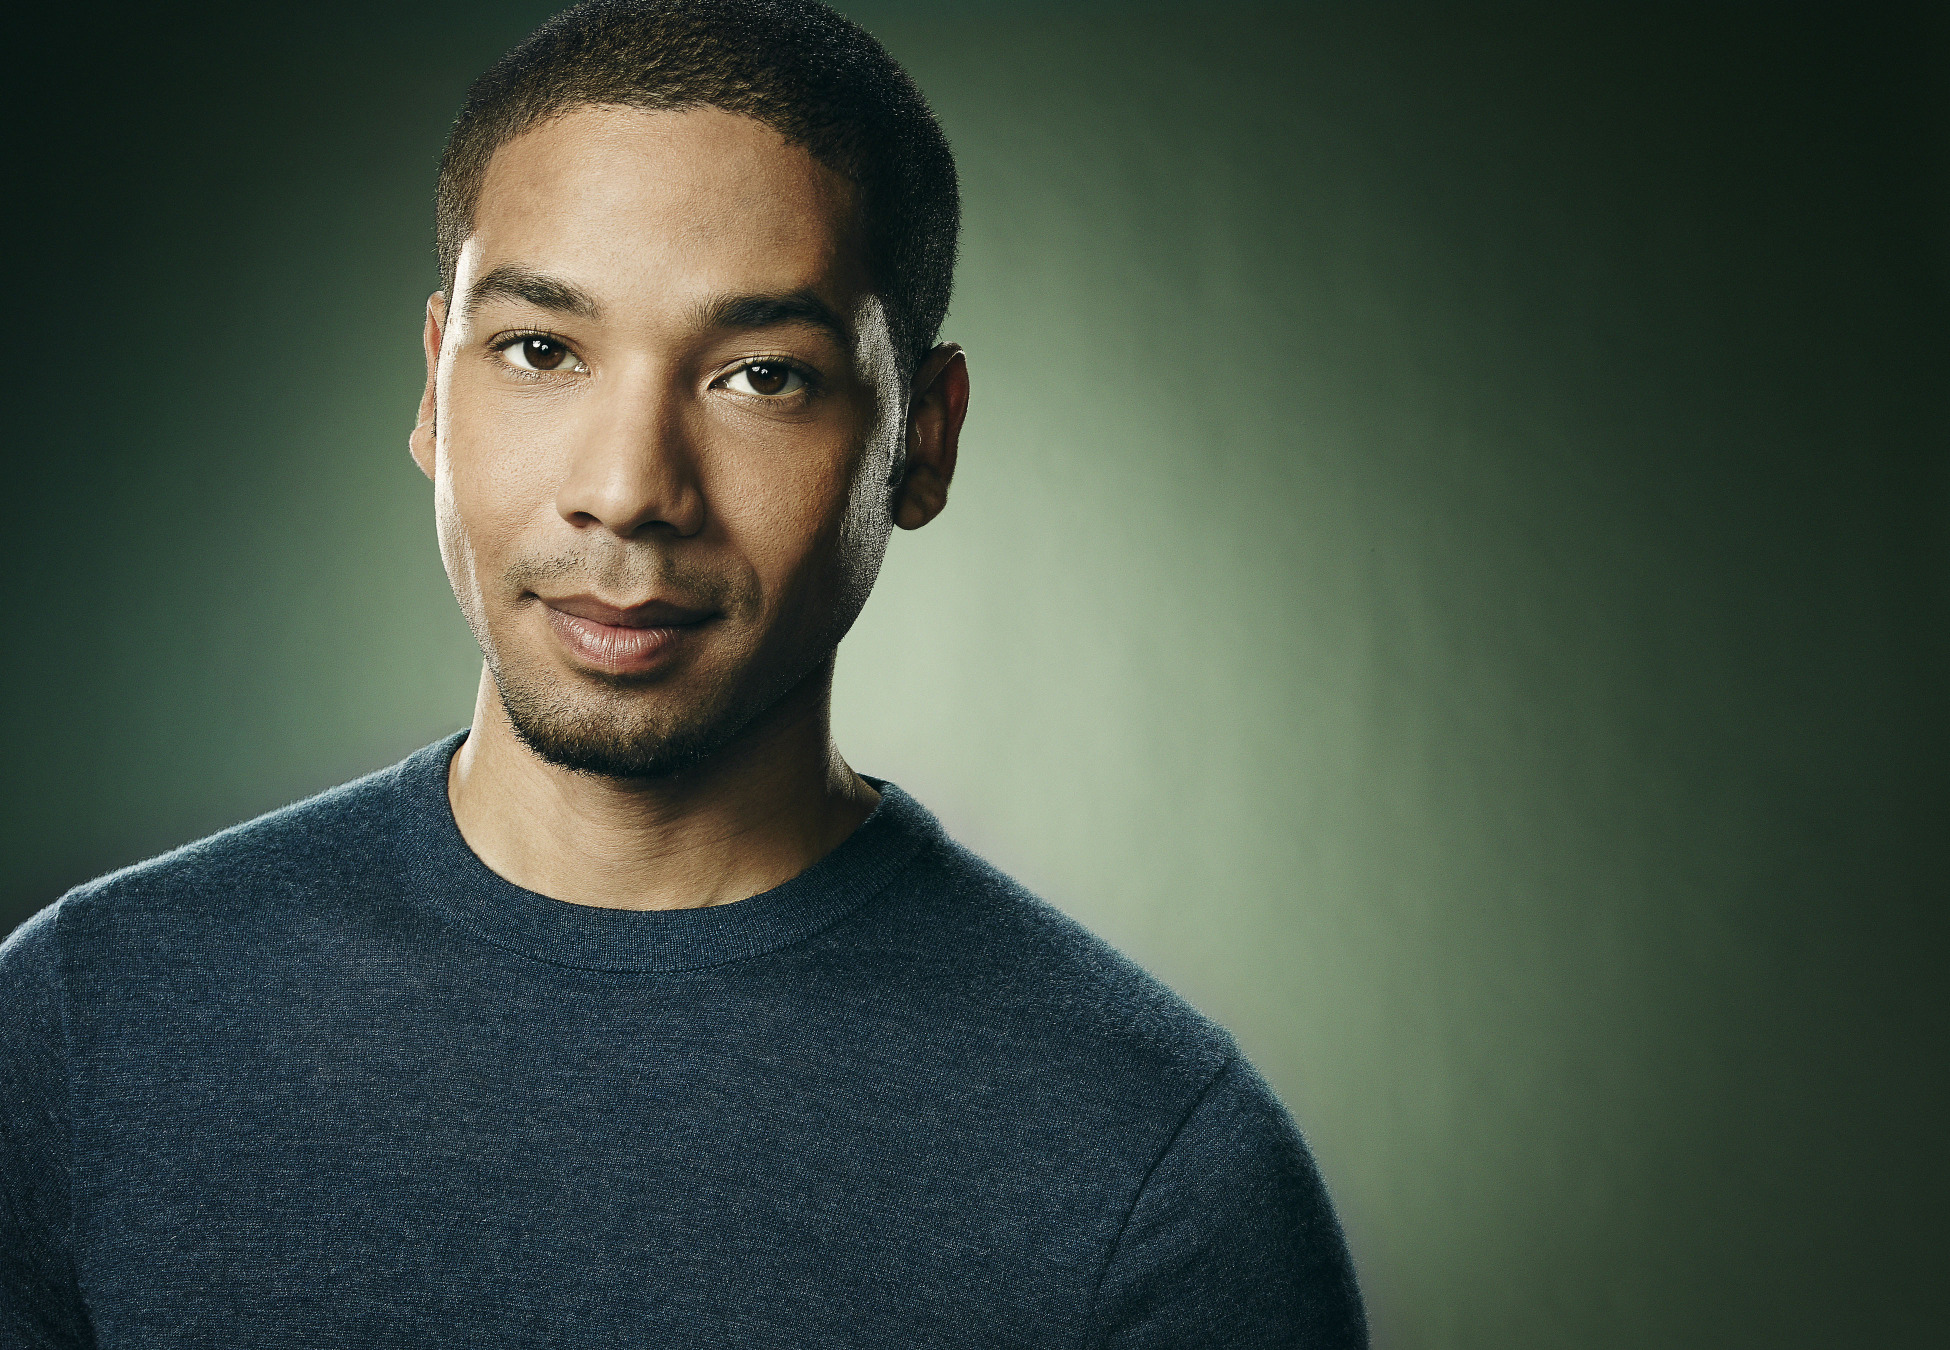 empire gay singles 1 of 13 who are empire's castmembers dating in real lifethe cast of empire is maybe the most famous group of actors and actresses on tv, so everyone wants to know all about them.